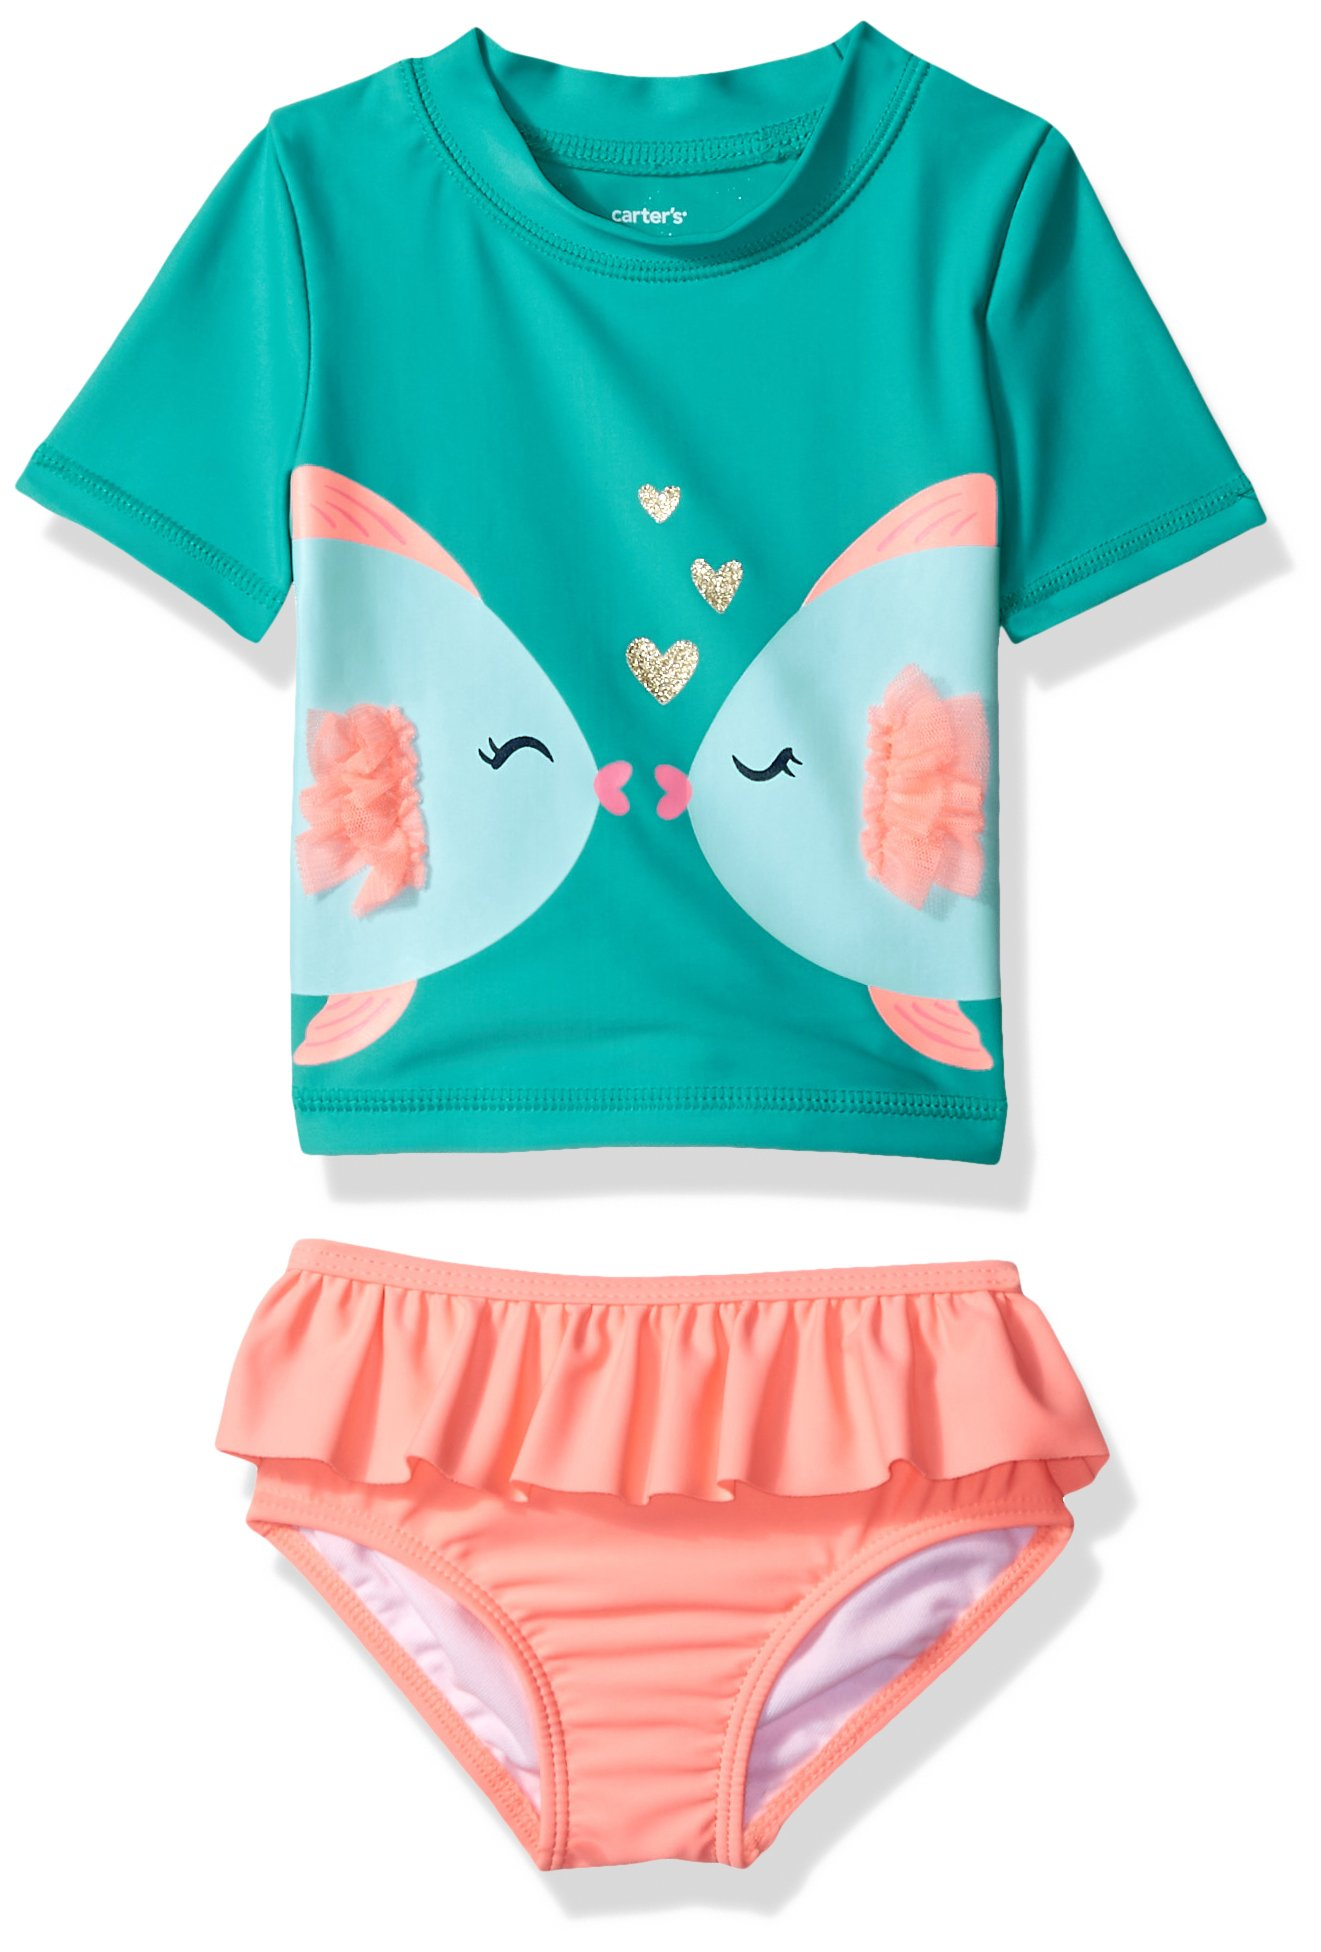 Carter's Girls' Two-Piece Swimsuit, Turquoise Fish, 12 Months